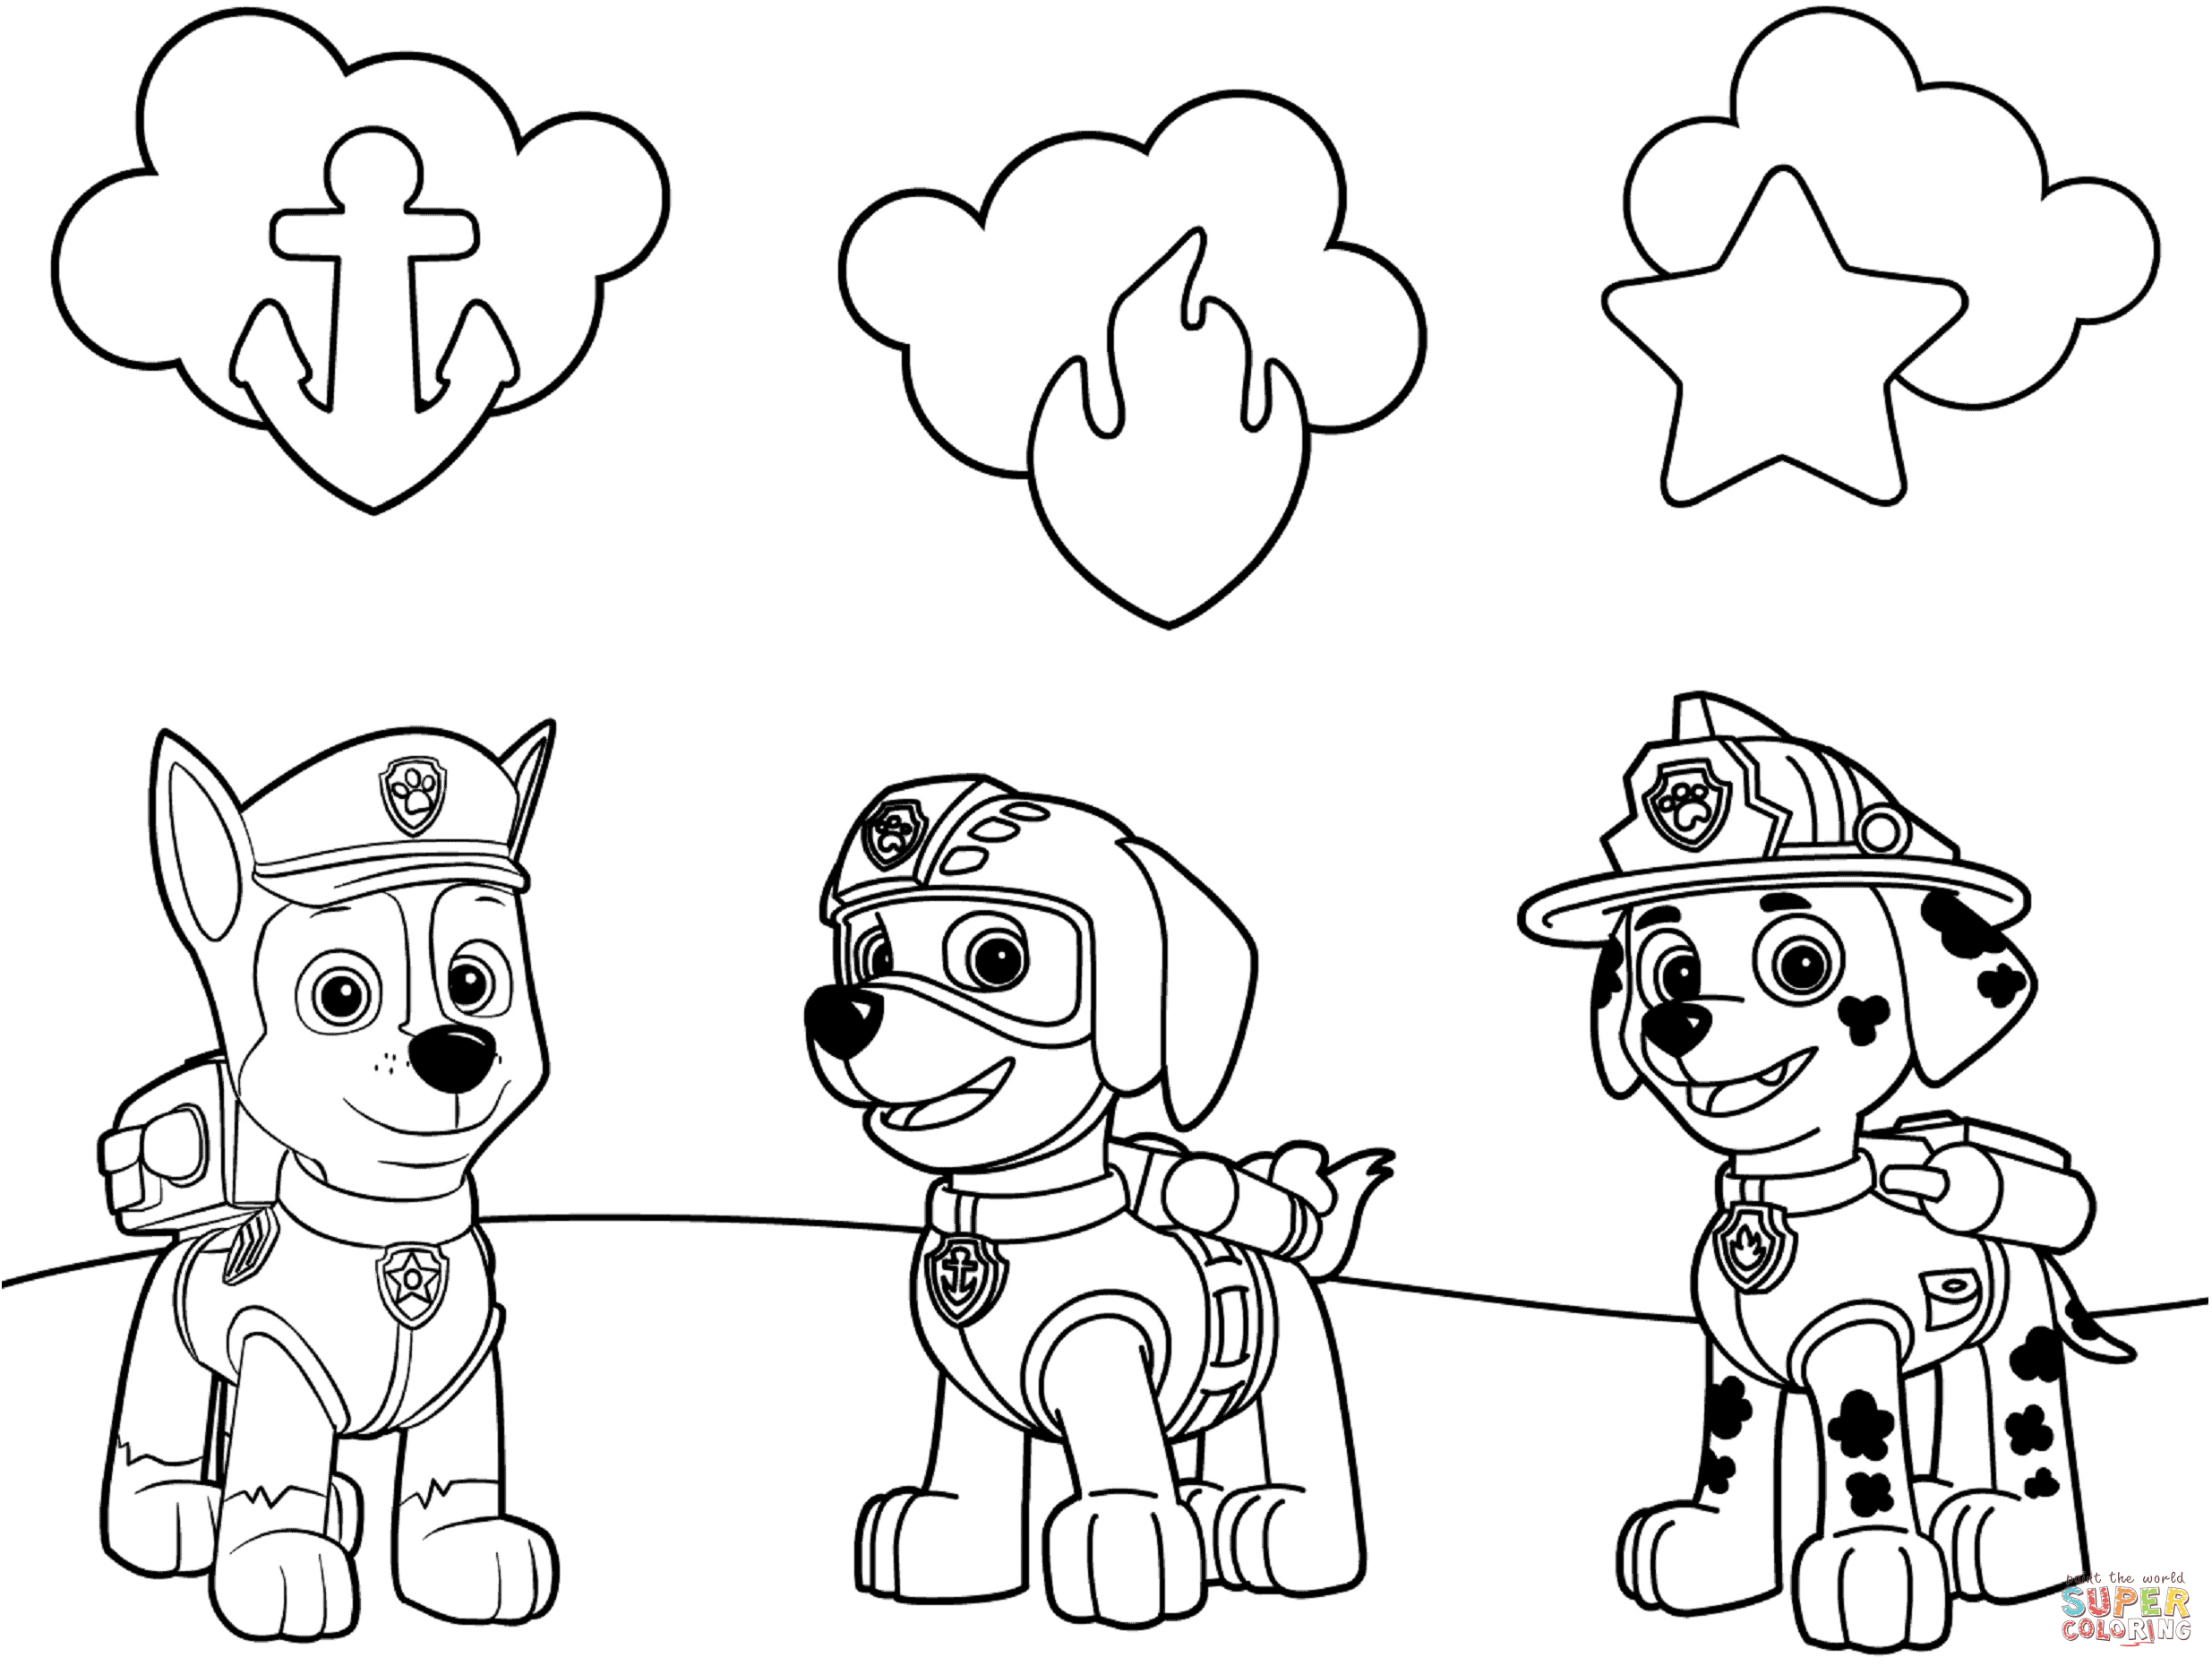 Paw Patrol Badges Coloring Page Free Printable Coloring Pages Paw Patrol Coloring Pages Paw Patrol Coloring Cartoon Coloring Pages